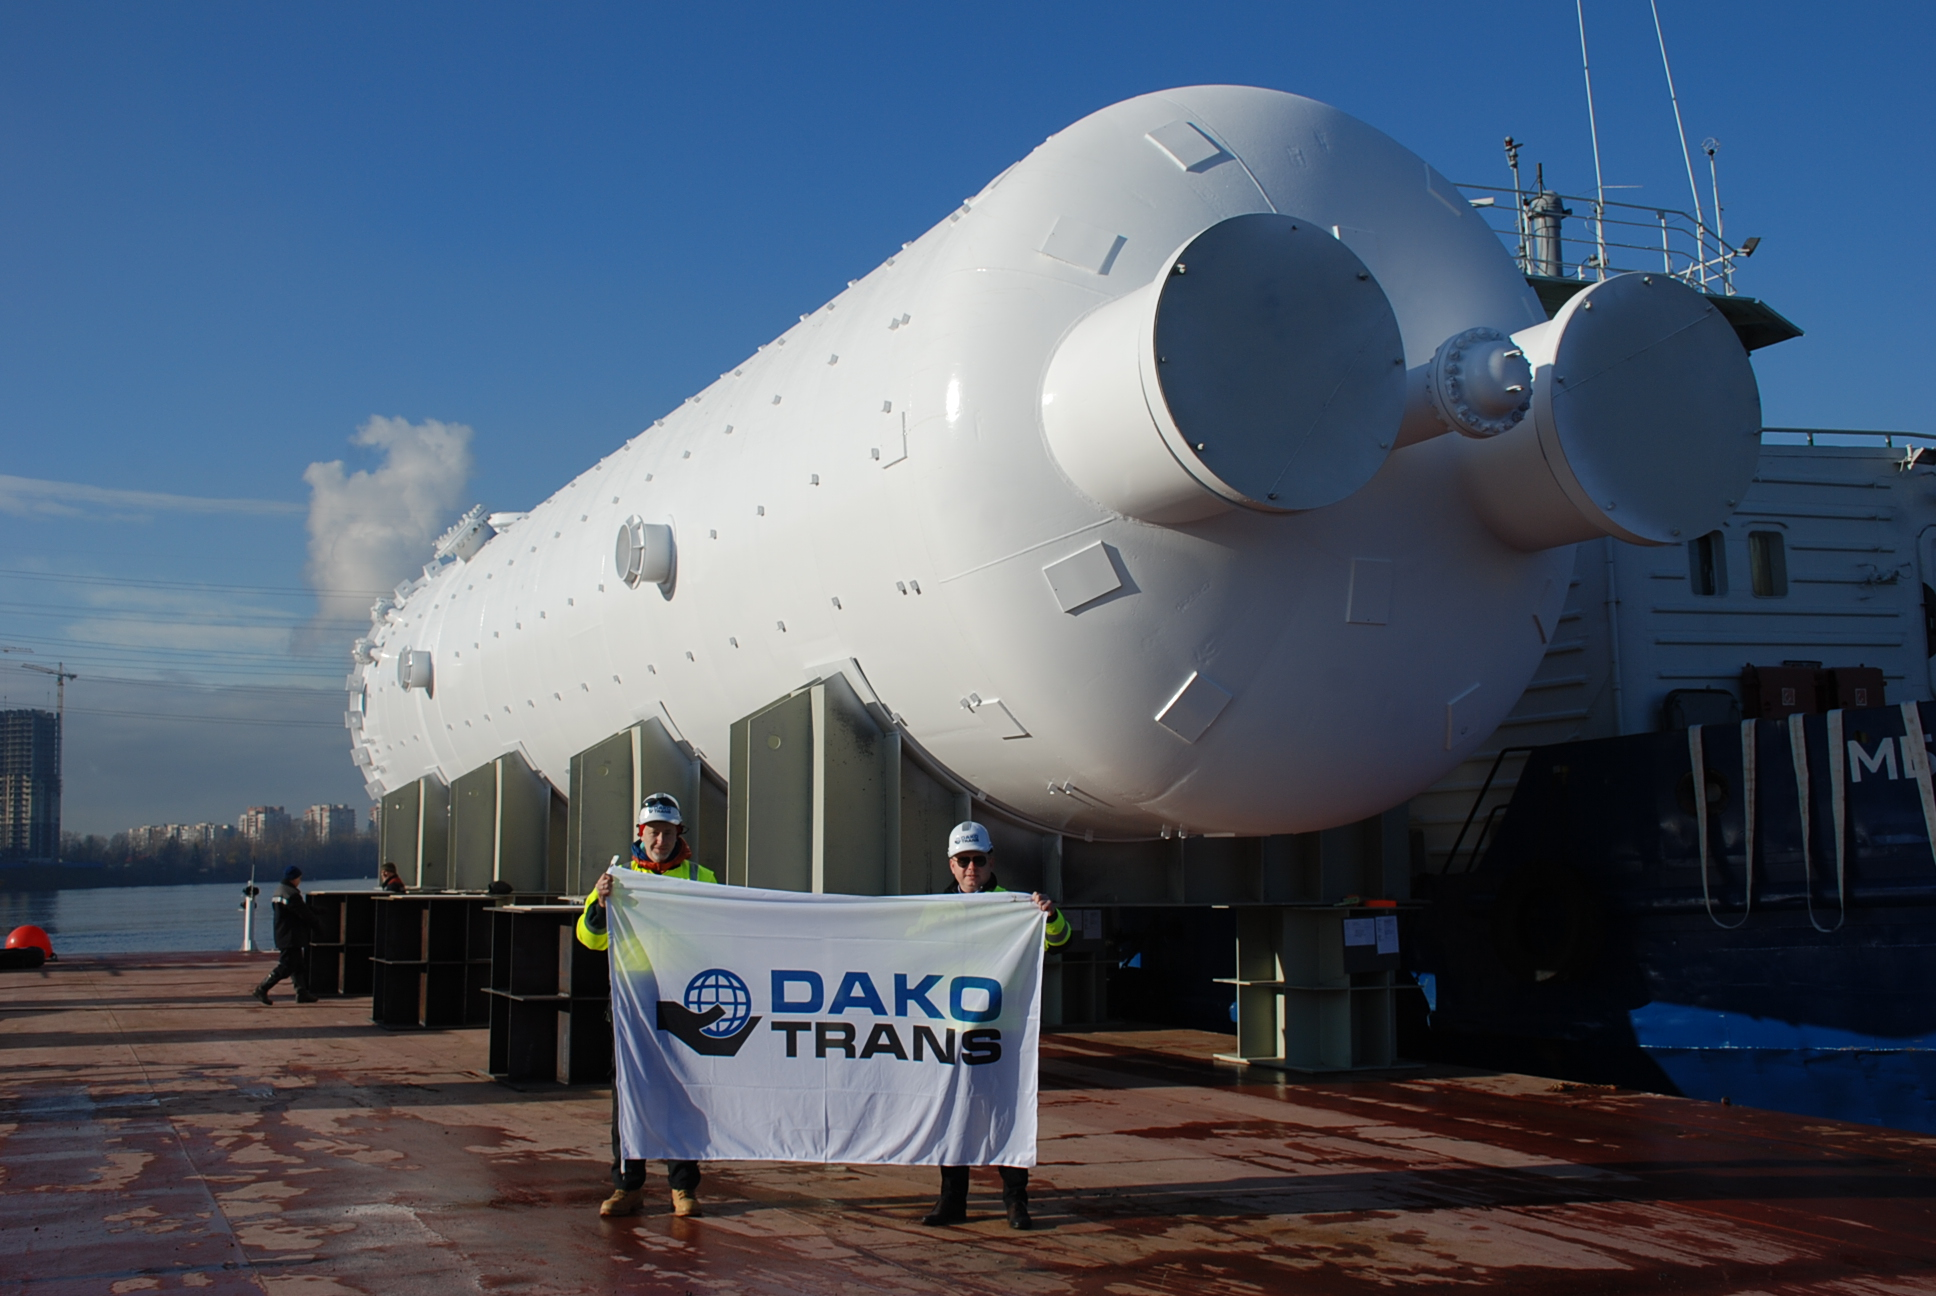 Export and loading of 6 large tanks